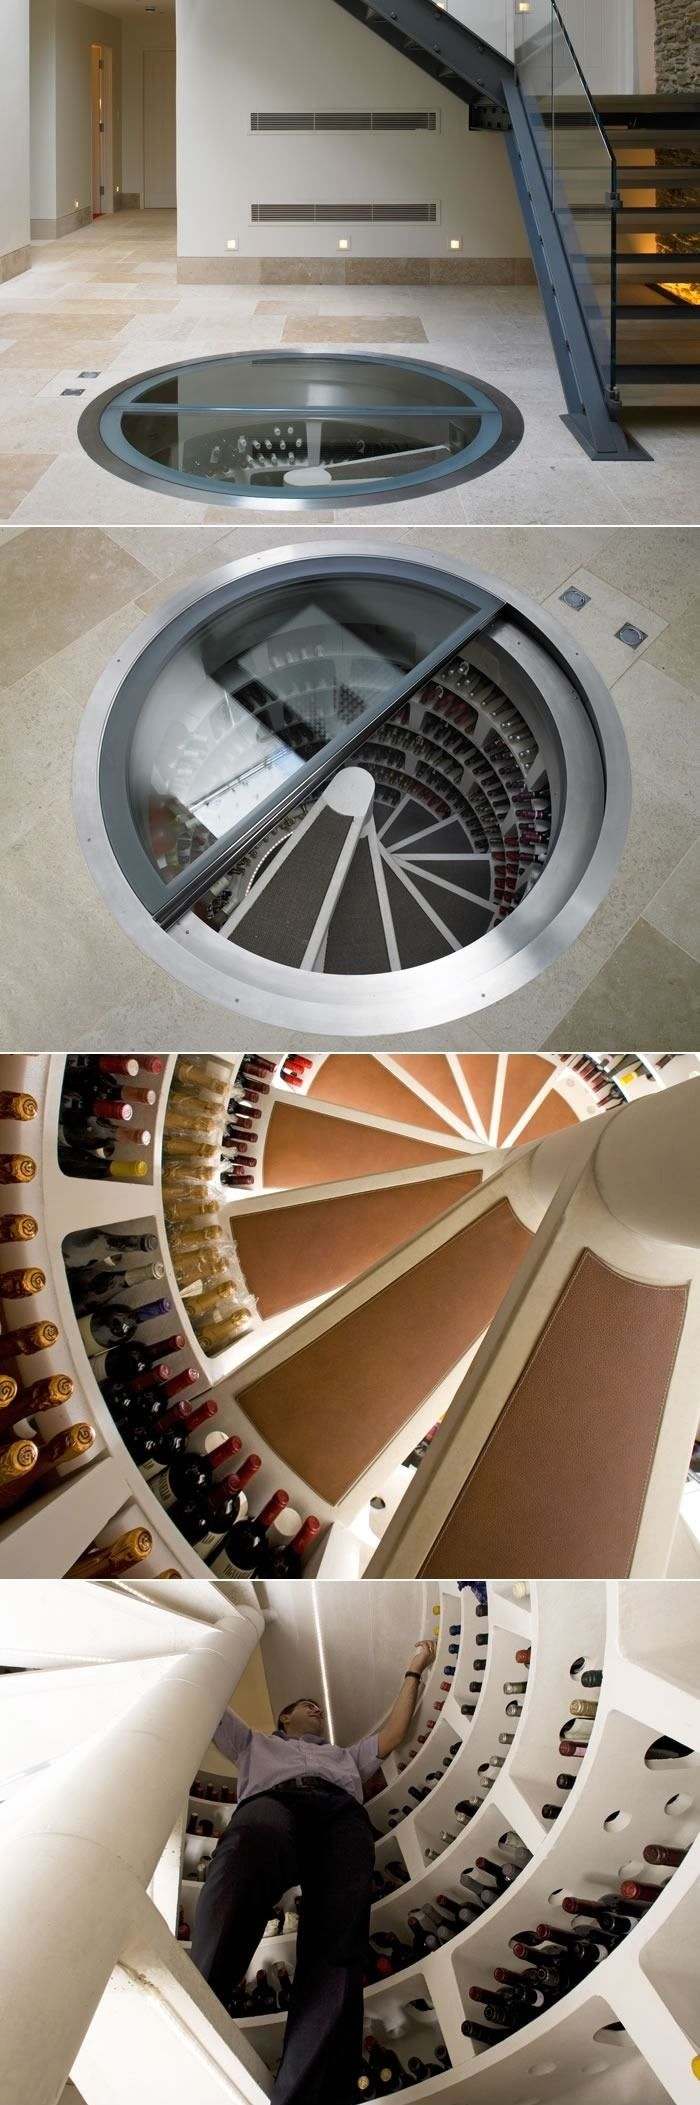 Spiral Wine Cellar, but filled with shoes ^^